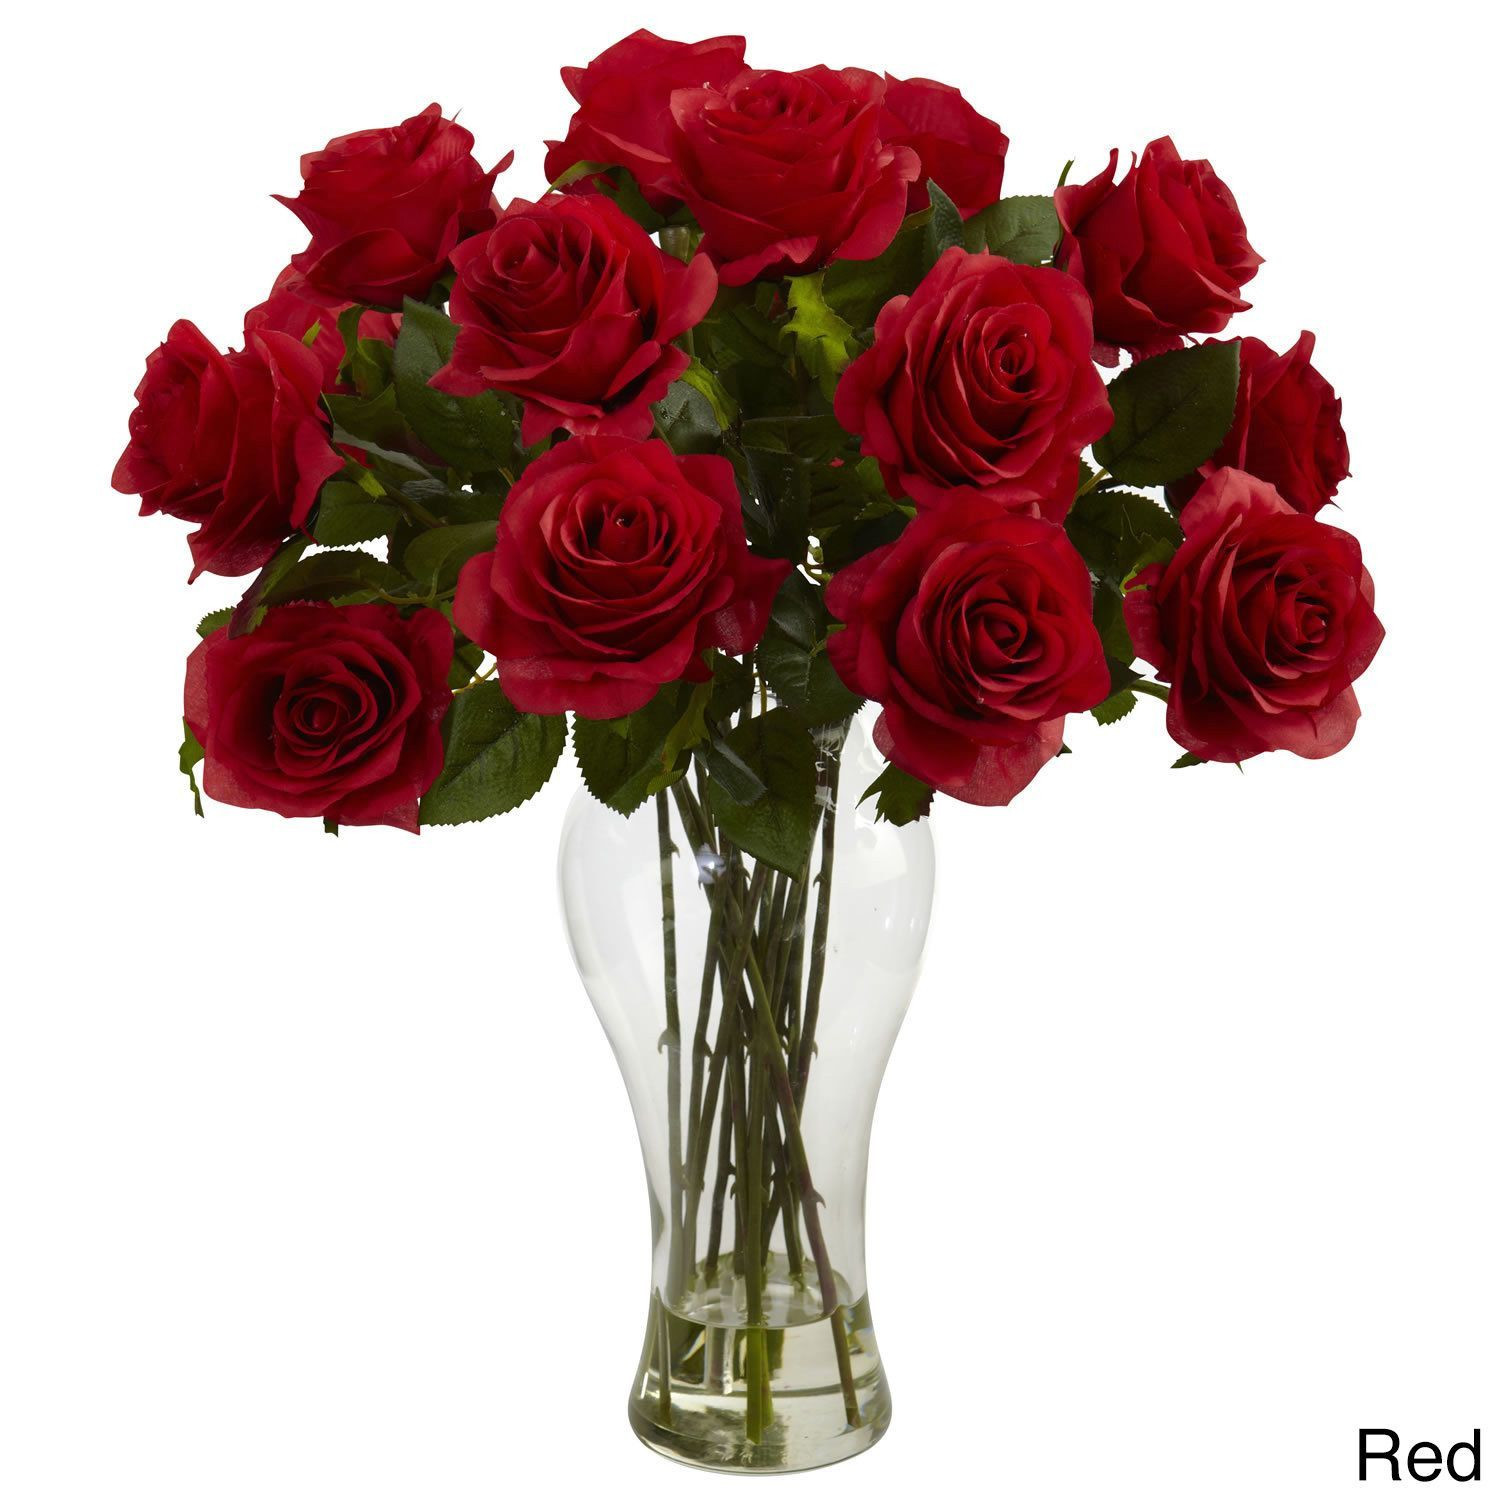 faux flower arrangements in vase of nearly natural blooming roses vase blooming roses w vase red in nearly natural blooming roses vase blooming roses w vase red plastic